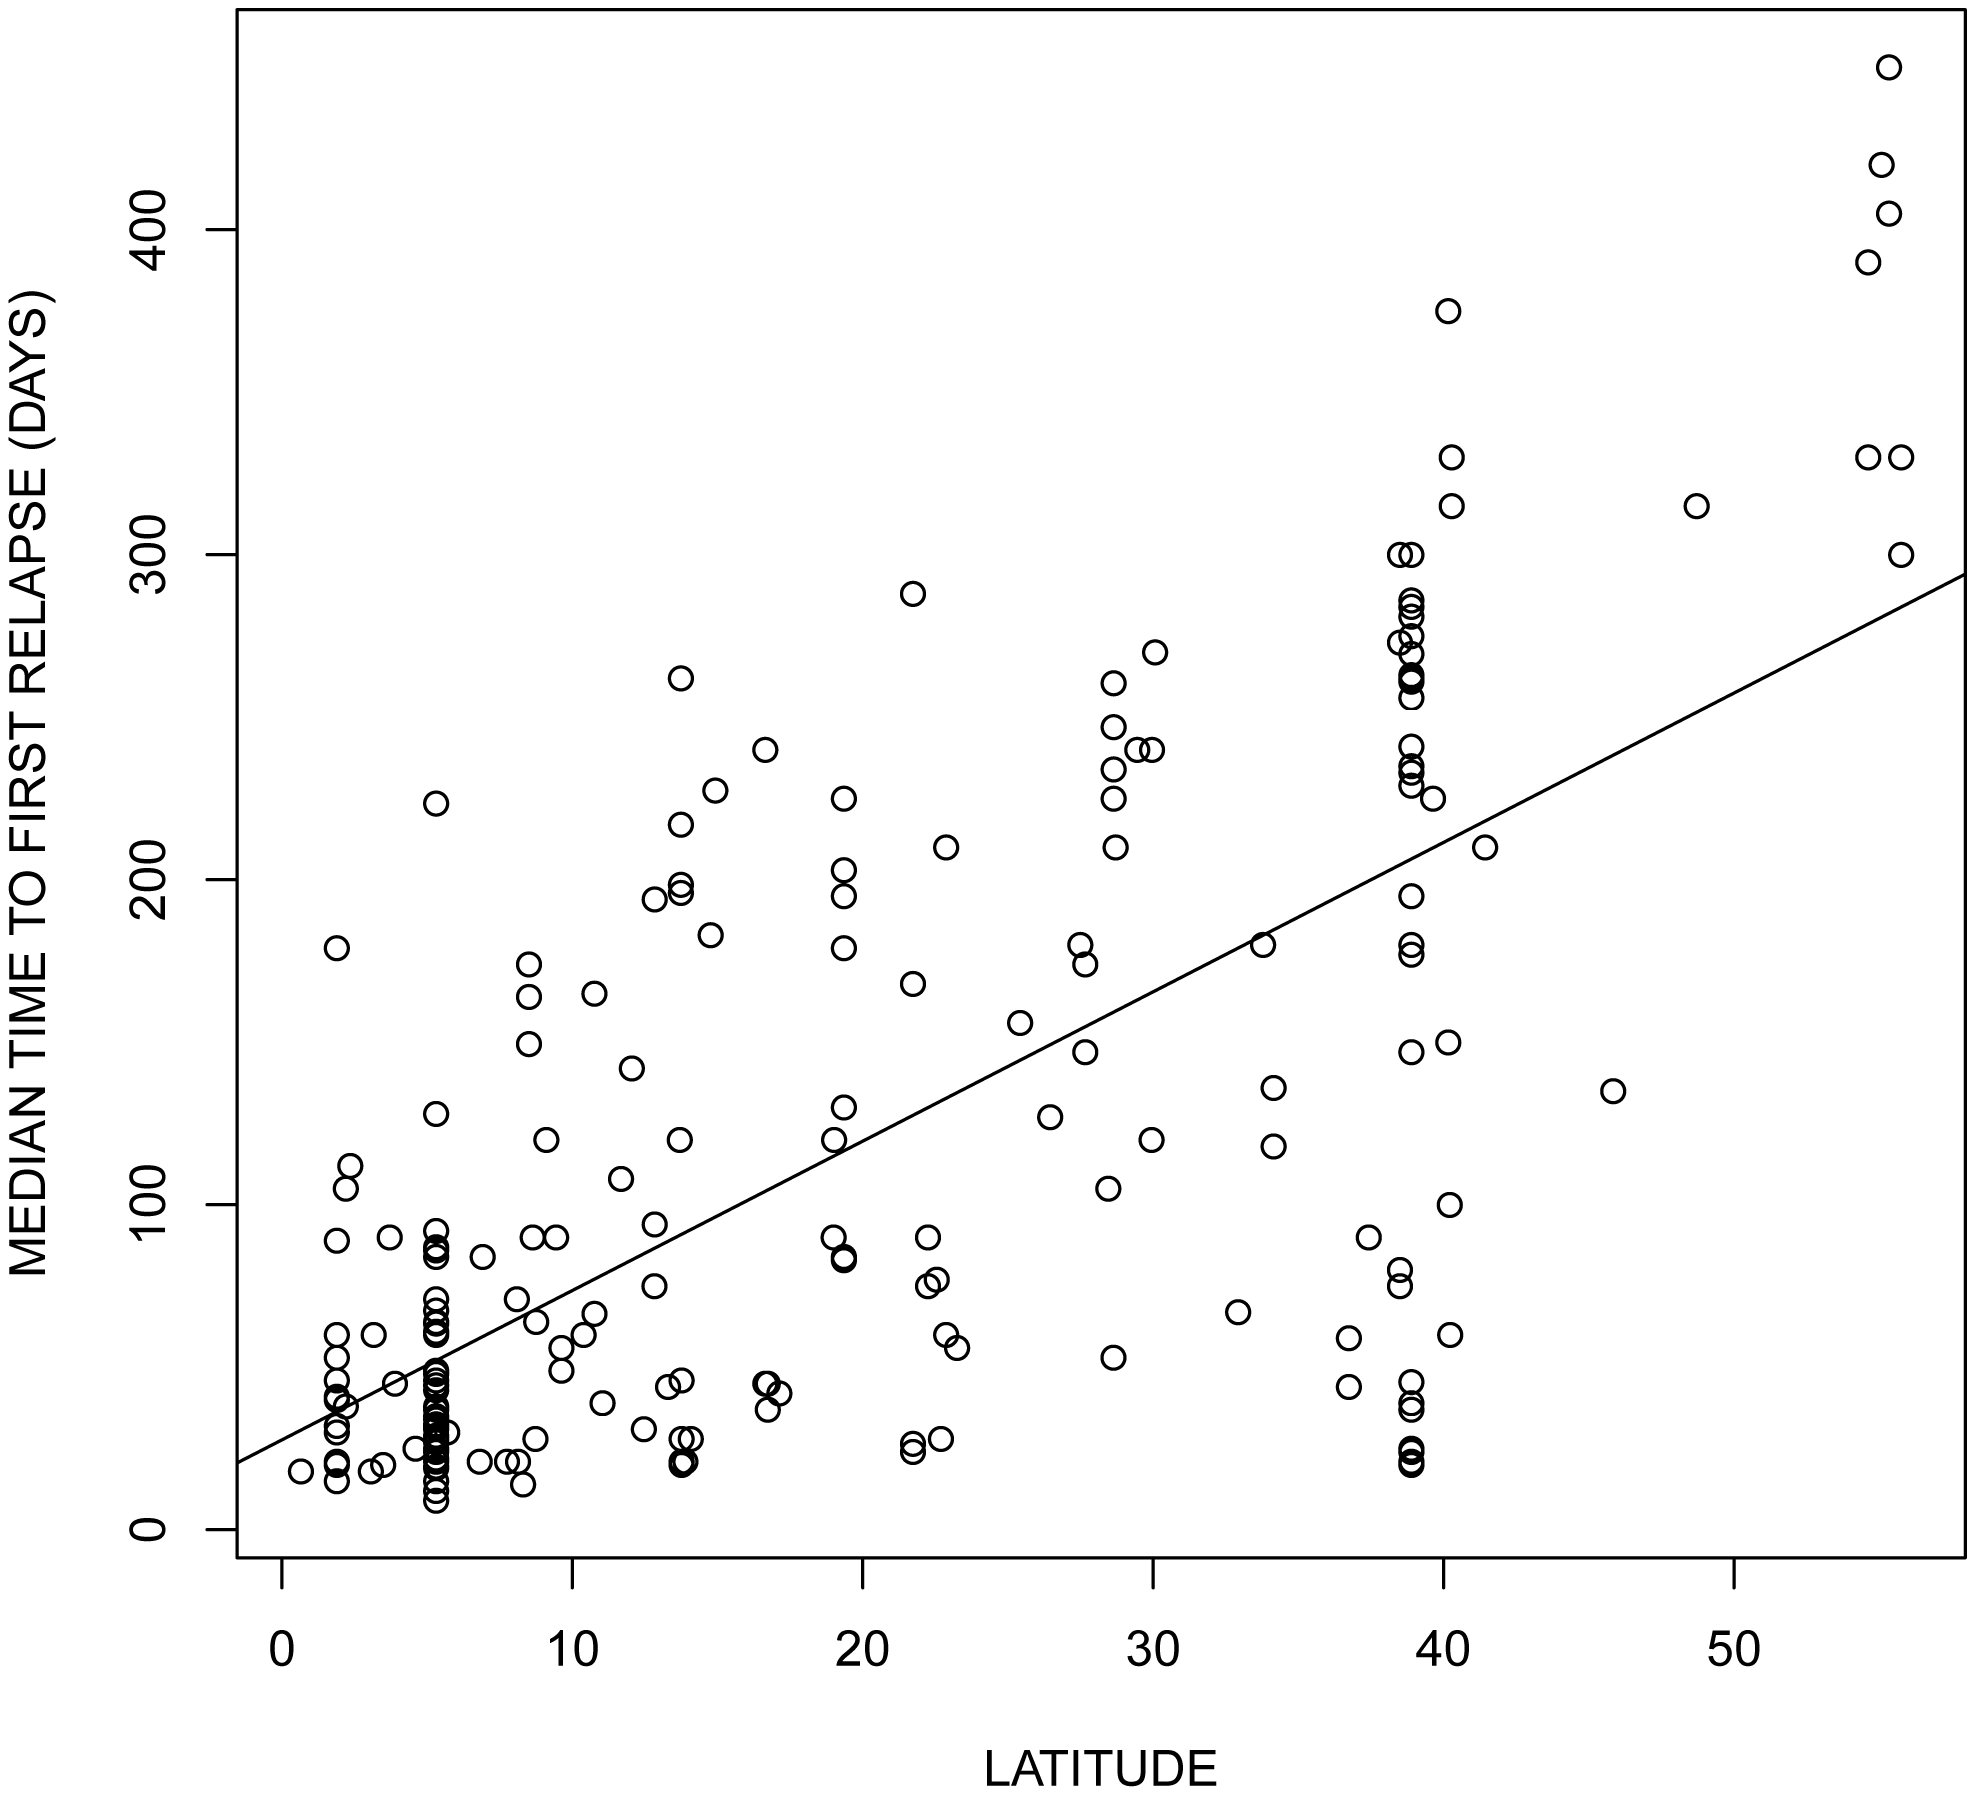 Effect of latitude on the relapsing rate of <i>Plasmodium vivax</i>. The data was obtained from the supplementary <em class=&quot;ref&quot;>Table S1</em> of Battle <i>et al.</i> <em class=&quot;ref&quot;>[22]</em>. Each dot represents a parasite strain originating from different locations.